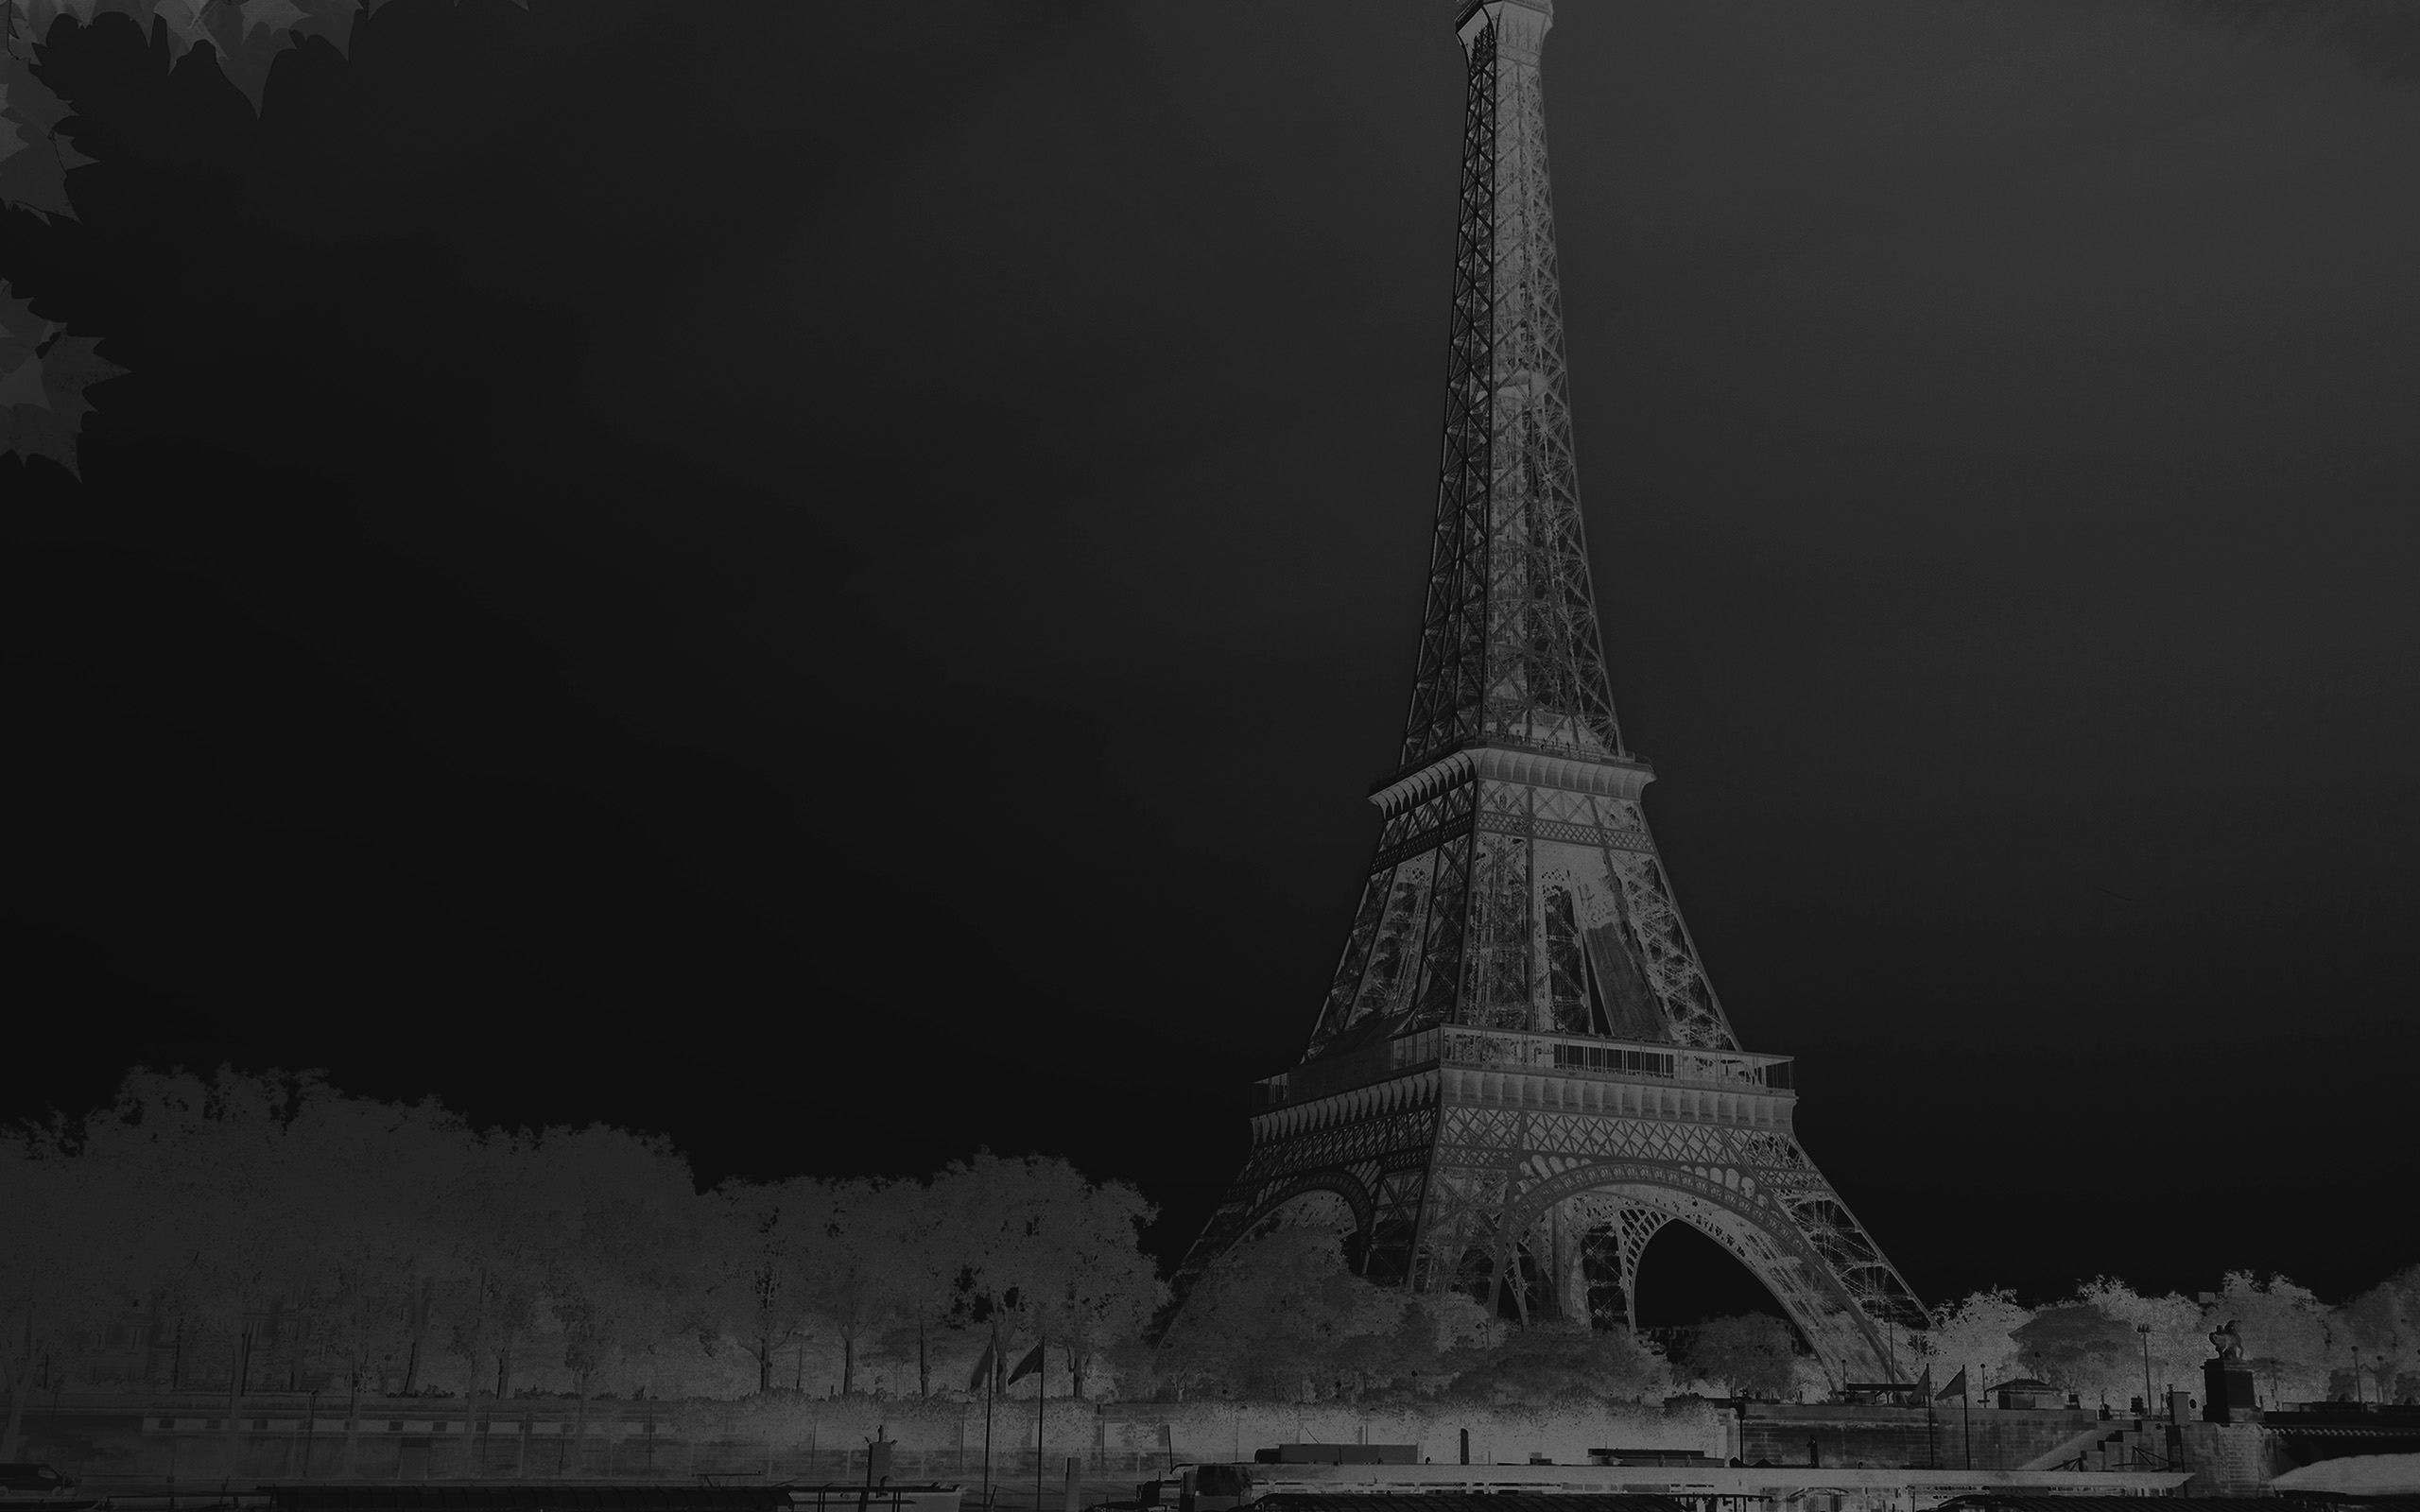 Na19 Sky Dark Bw Black Eiffel Tower Nature Paris City Wallpaper